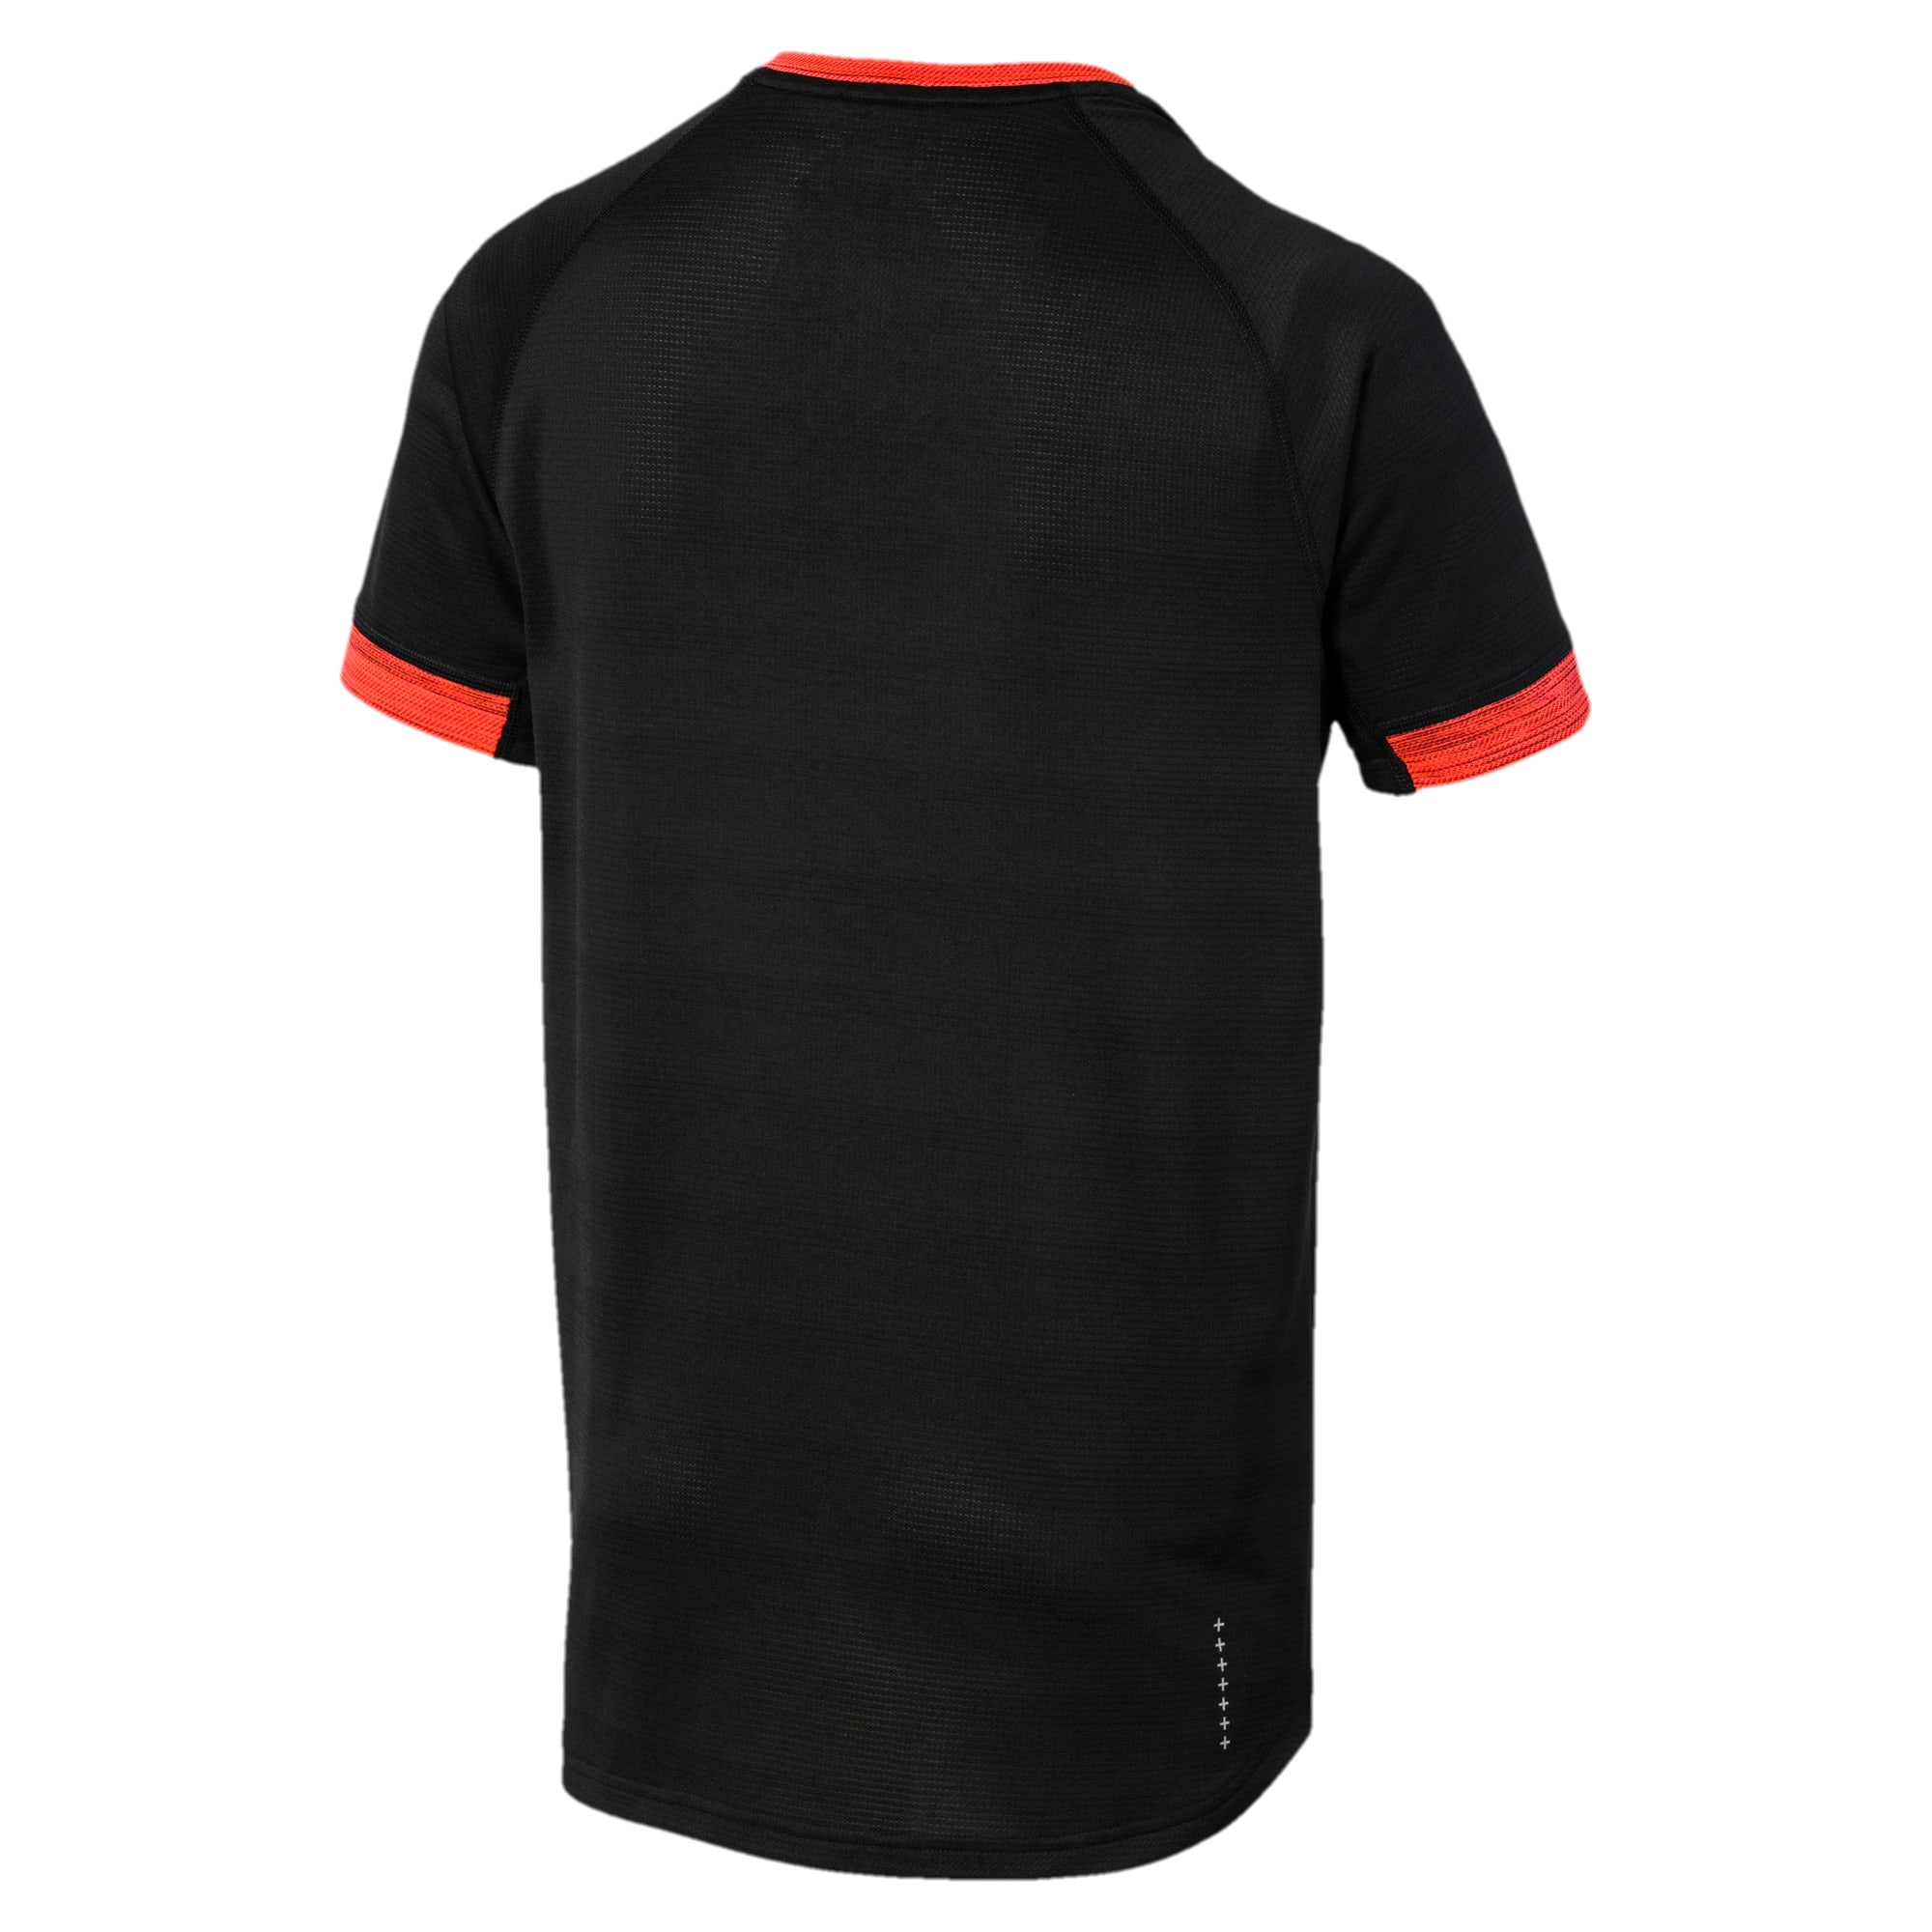 Thumbnail 6 of GET FAST THERMO-R+ SS ランニング Tシャツ 半袖, Black Htr-Nrgy Red Htr, medium-JPN